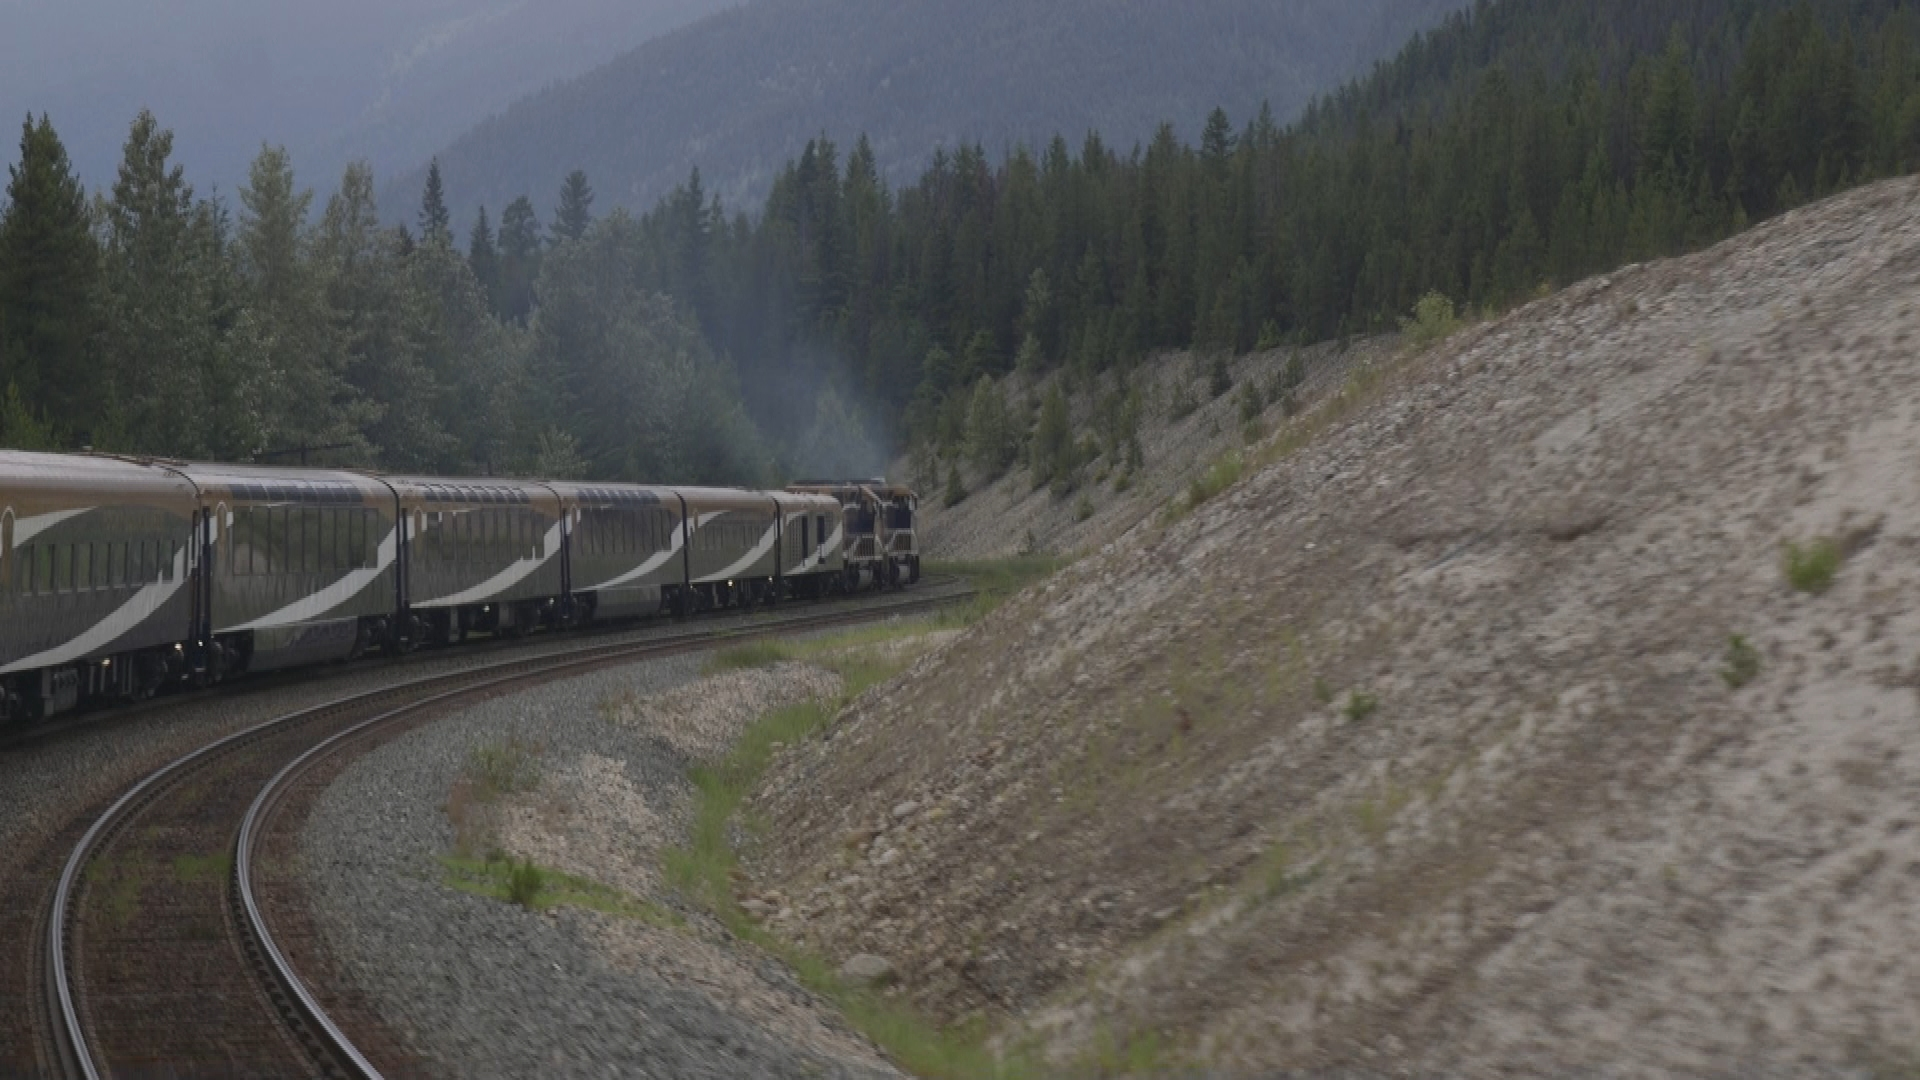 The Rocky Mountaineer makes its way to Kamloops.